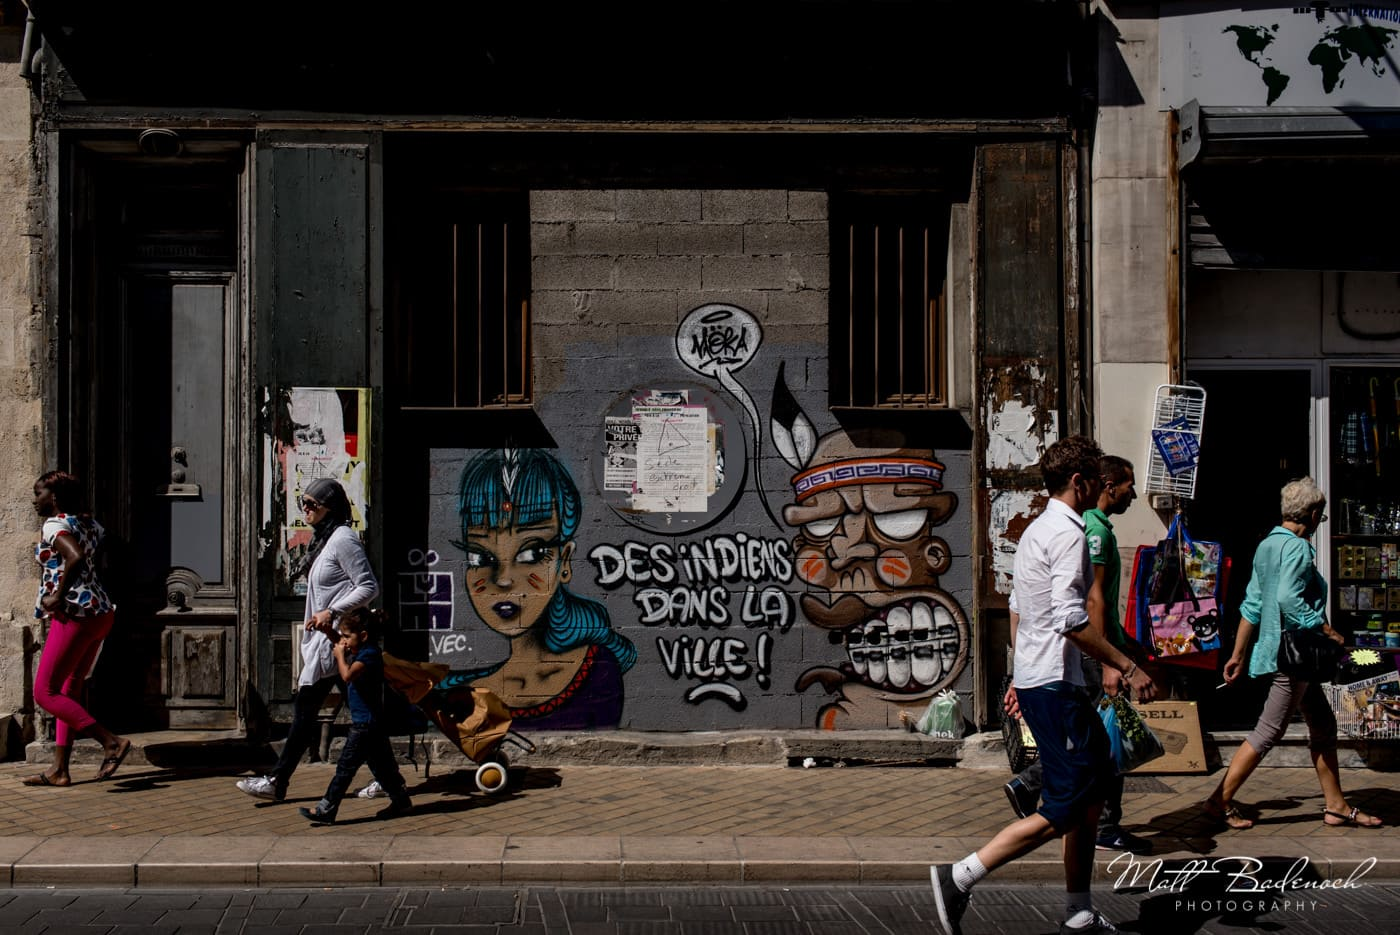 graffiti in the street, | bordeaux street photography